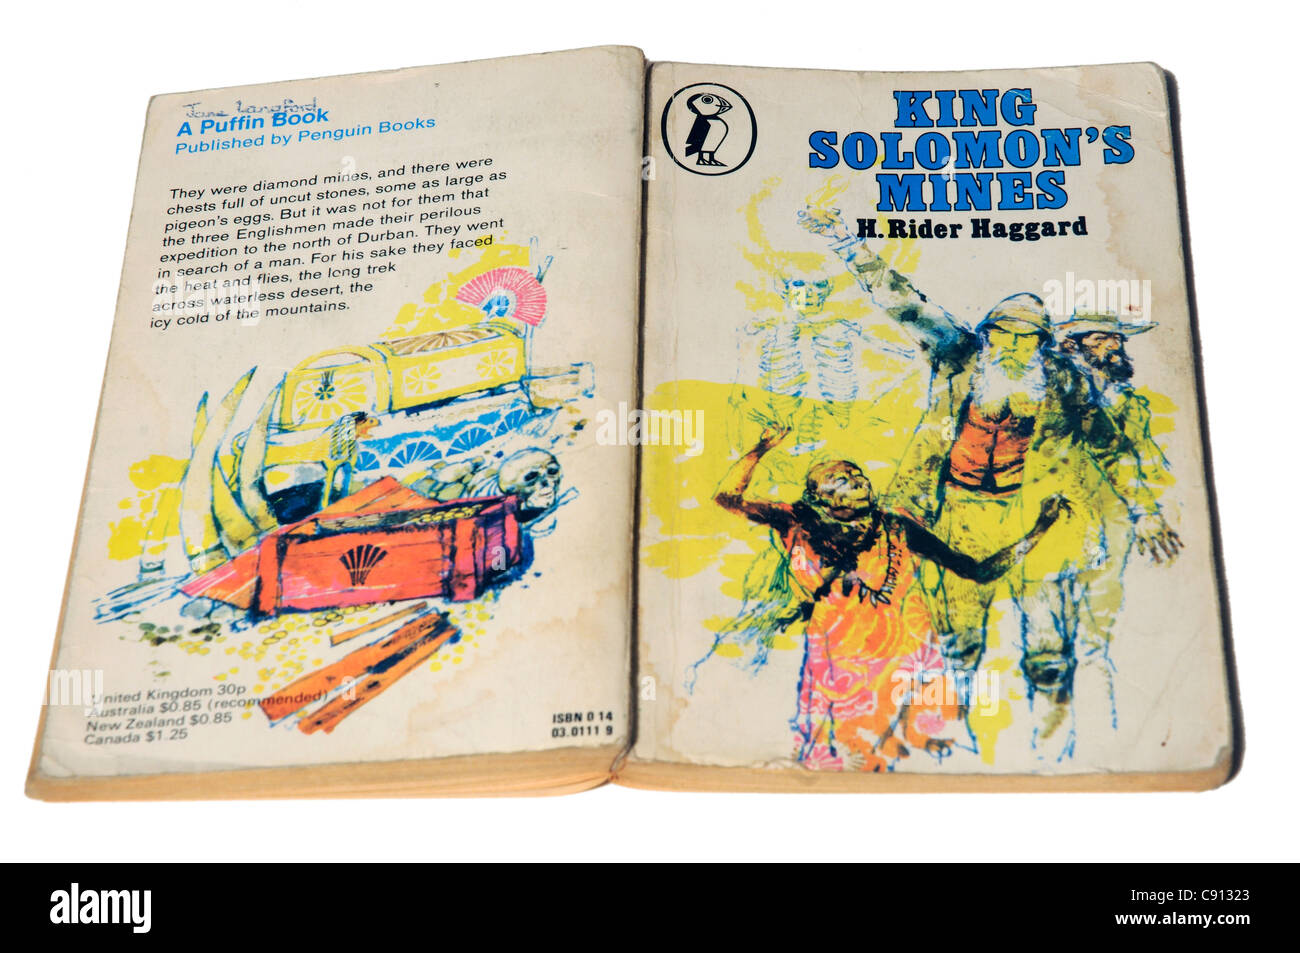 King Solomon's Mines by H Rider Haggard - Stock Image